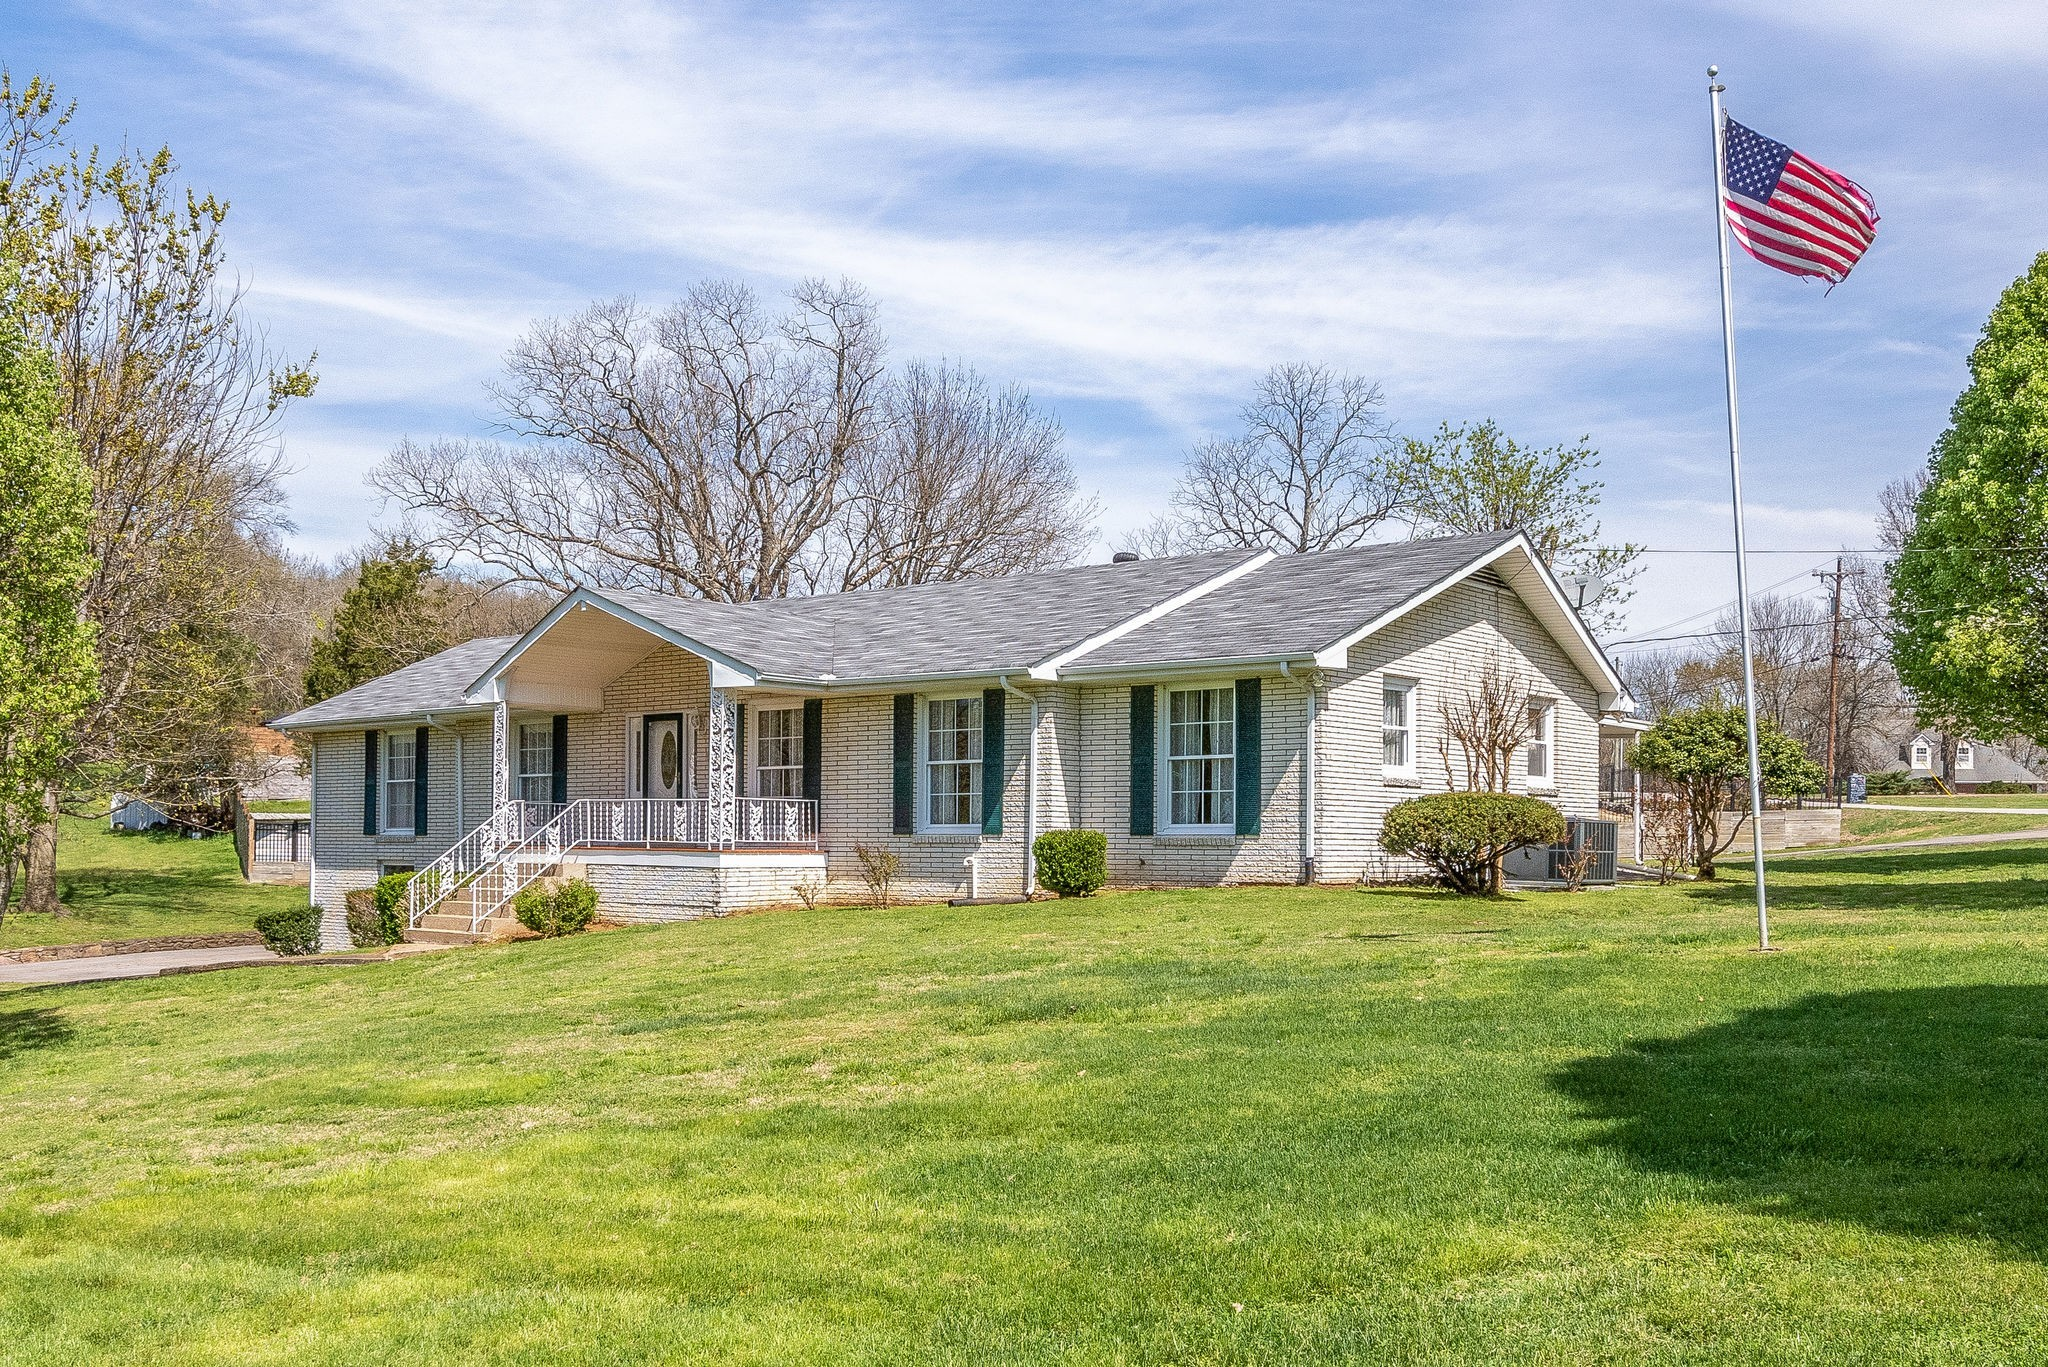 SELLER OFFERING $2500 IN CLOSING COSTS! Very well maintained ranch home on a beautiful .98 acre corner lot, full basement w/ finished room & a full bathroom, large sunroom w/ attached patio, skylight in kitchen, slate floor entryway, 2 car garage.  One owner, custom built ready for your personal touch!  Just minutes from the interstate, shopping & dining!  Home is North of Rivergate.  HOME USES 2300 SPRING BRANCH RD., MADISON, TN AS THE MAILING ADDRESS!